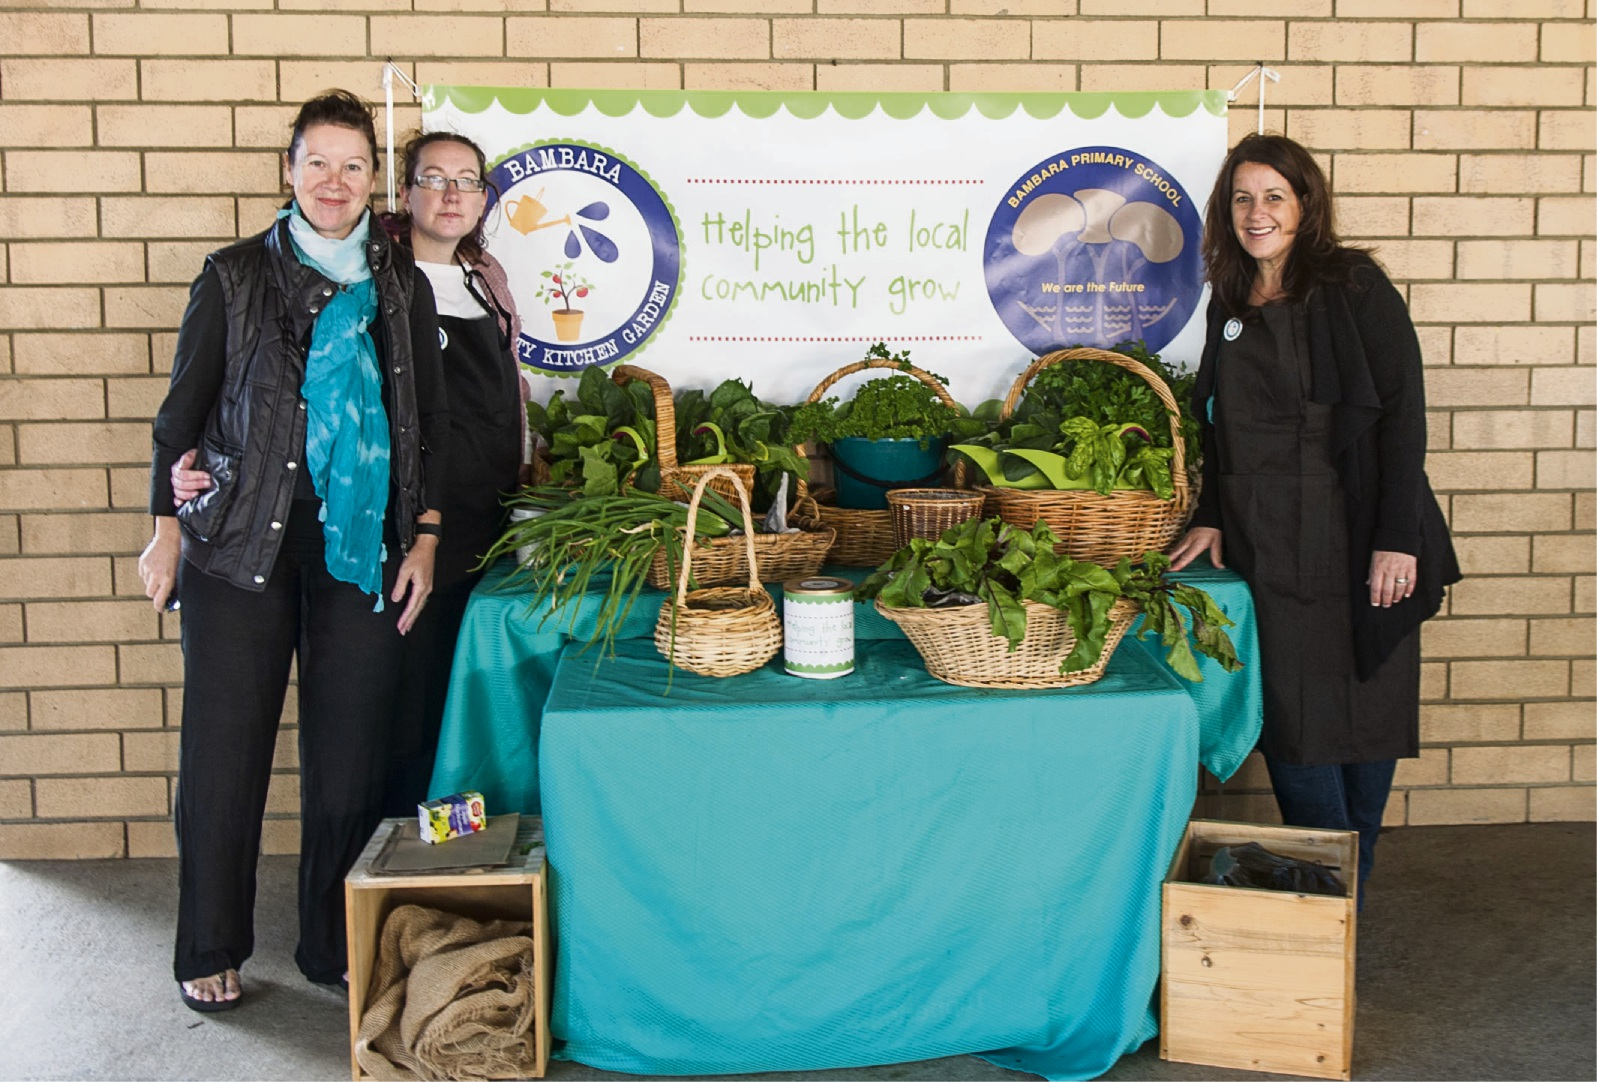 Shelley Webb, Jodie Moss, Morena Howe with the kitchen garden.